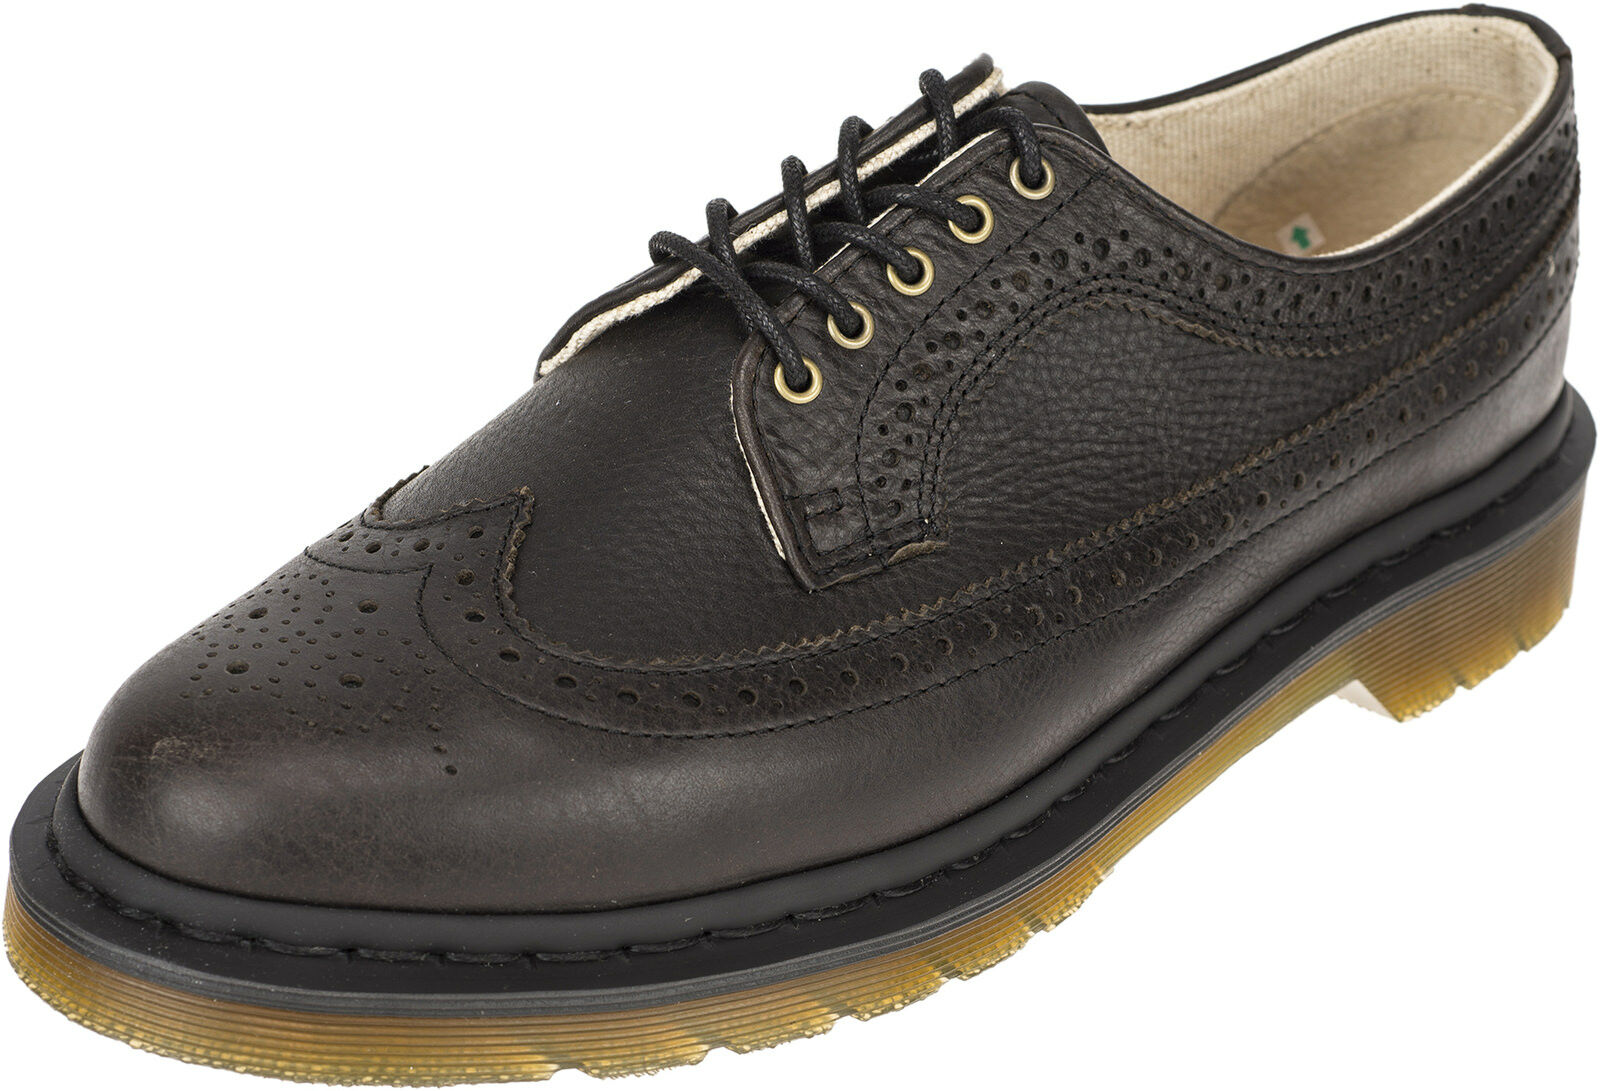 Dr. Martens HARVEST 5-Eye Classic BROGUE 3989 CREEPER Halbschuhe Rockabilly